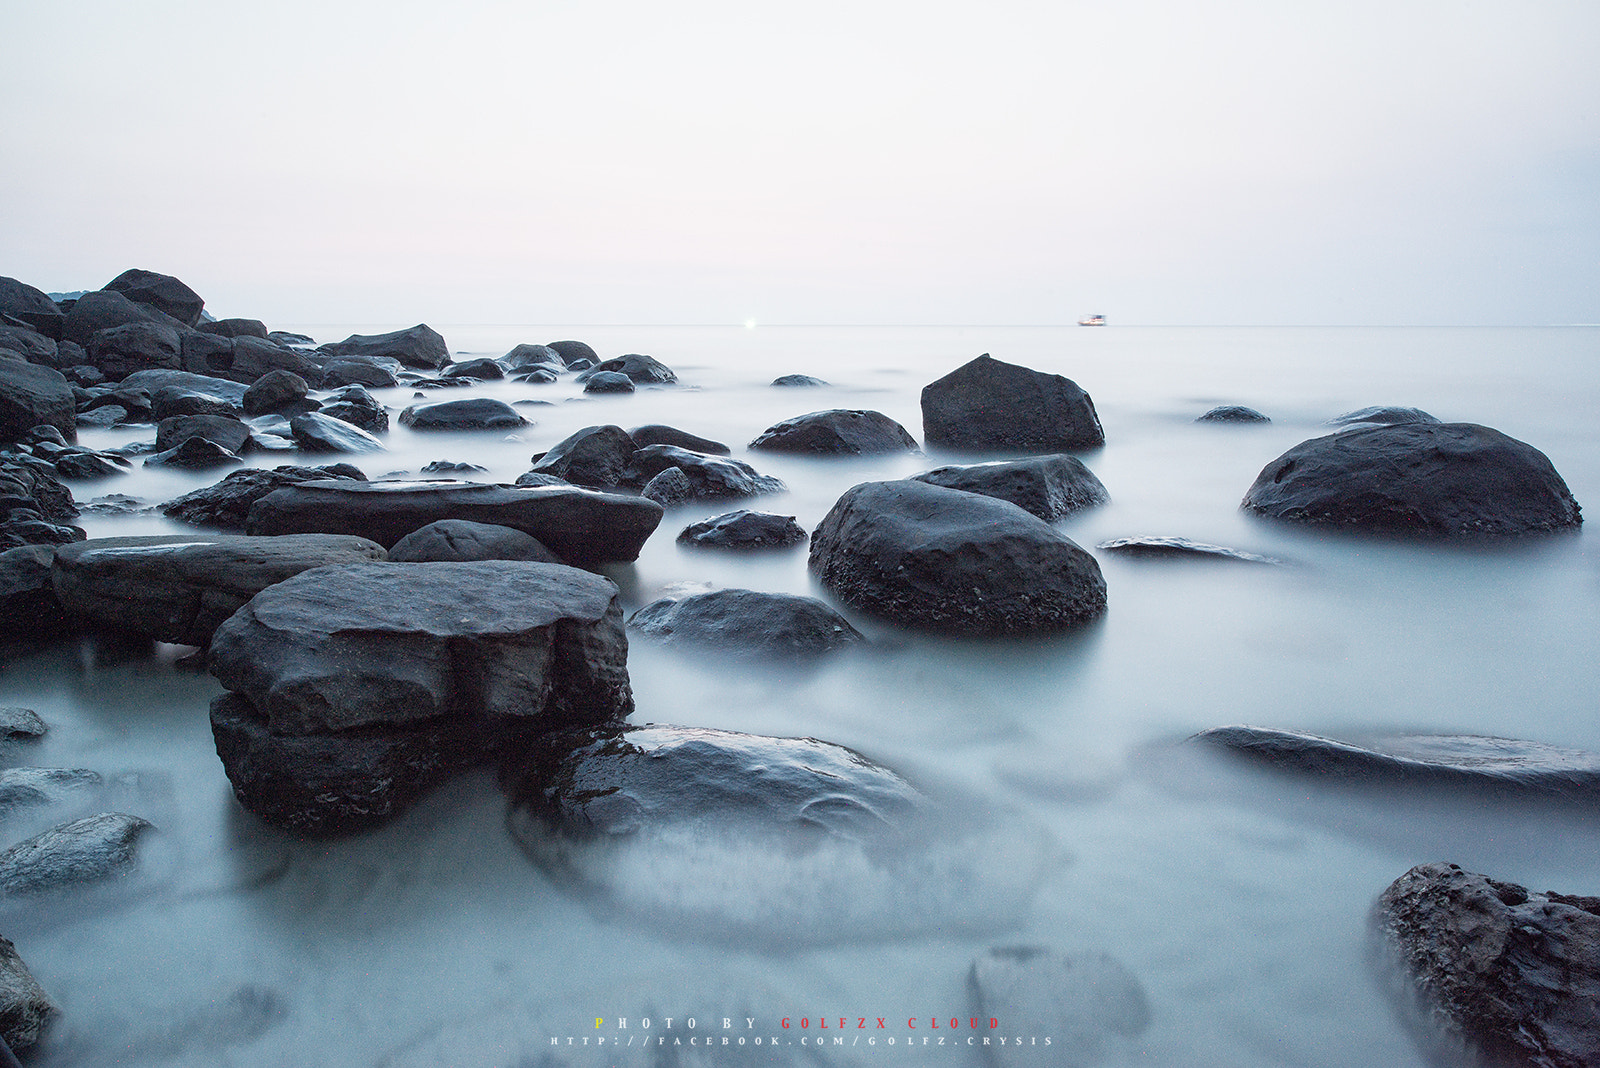 Photograph Sea of Silence. by Golfzx Cloud on 500px